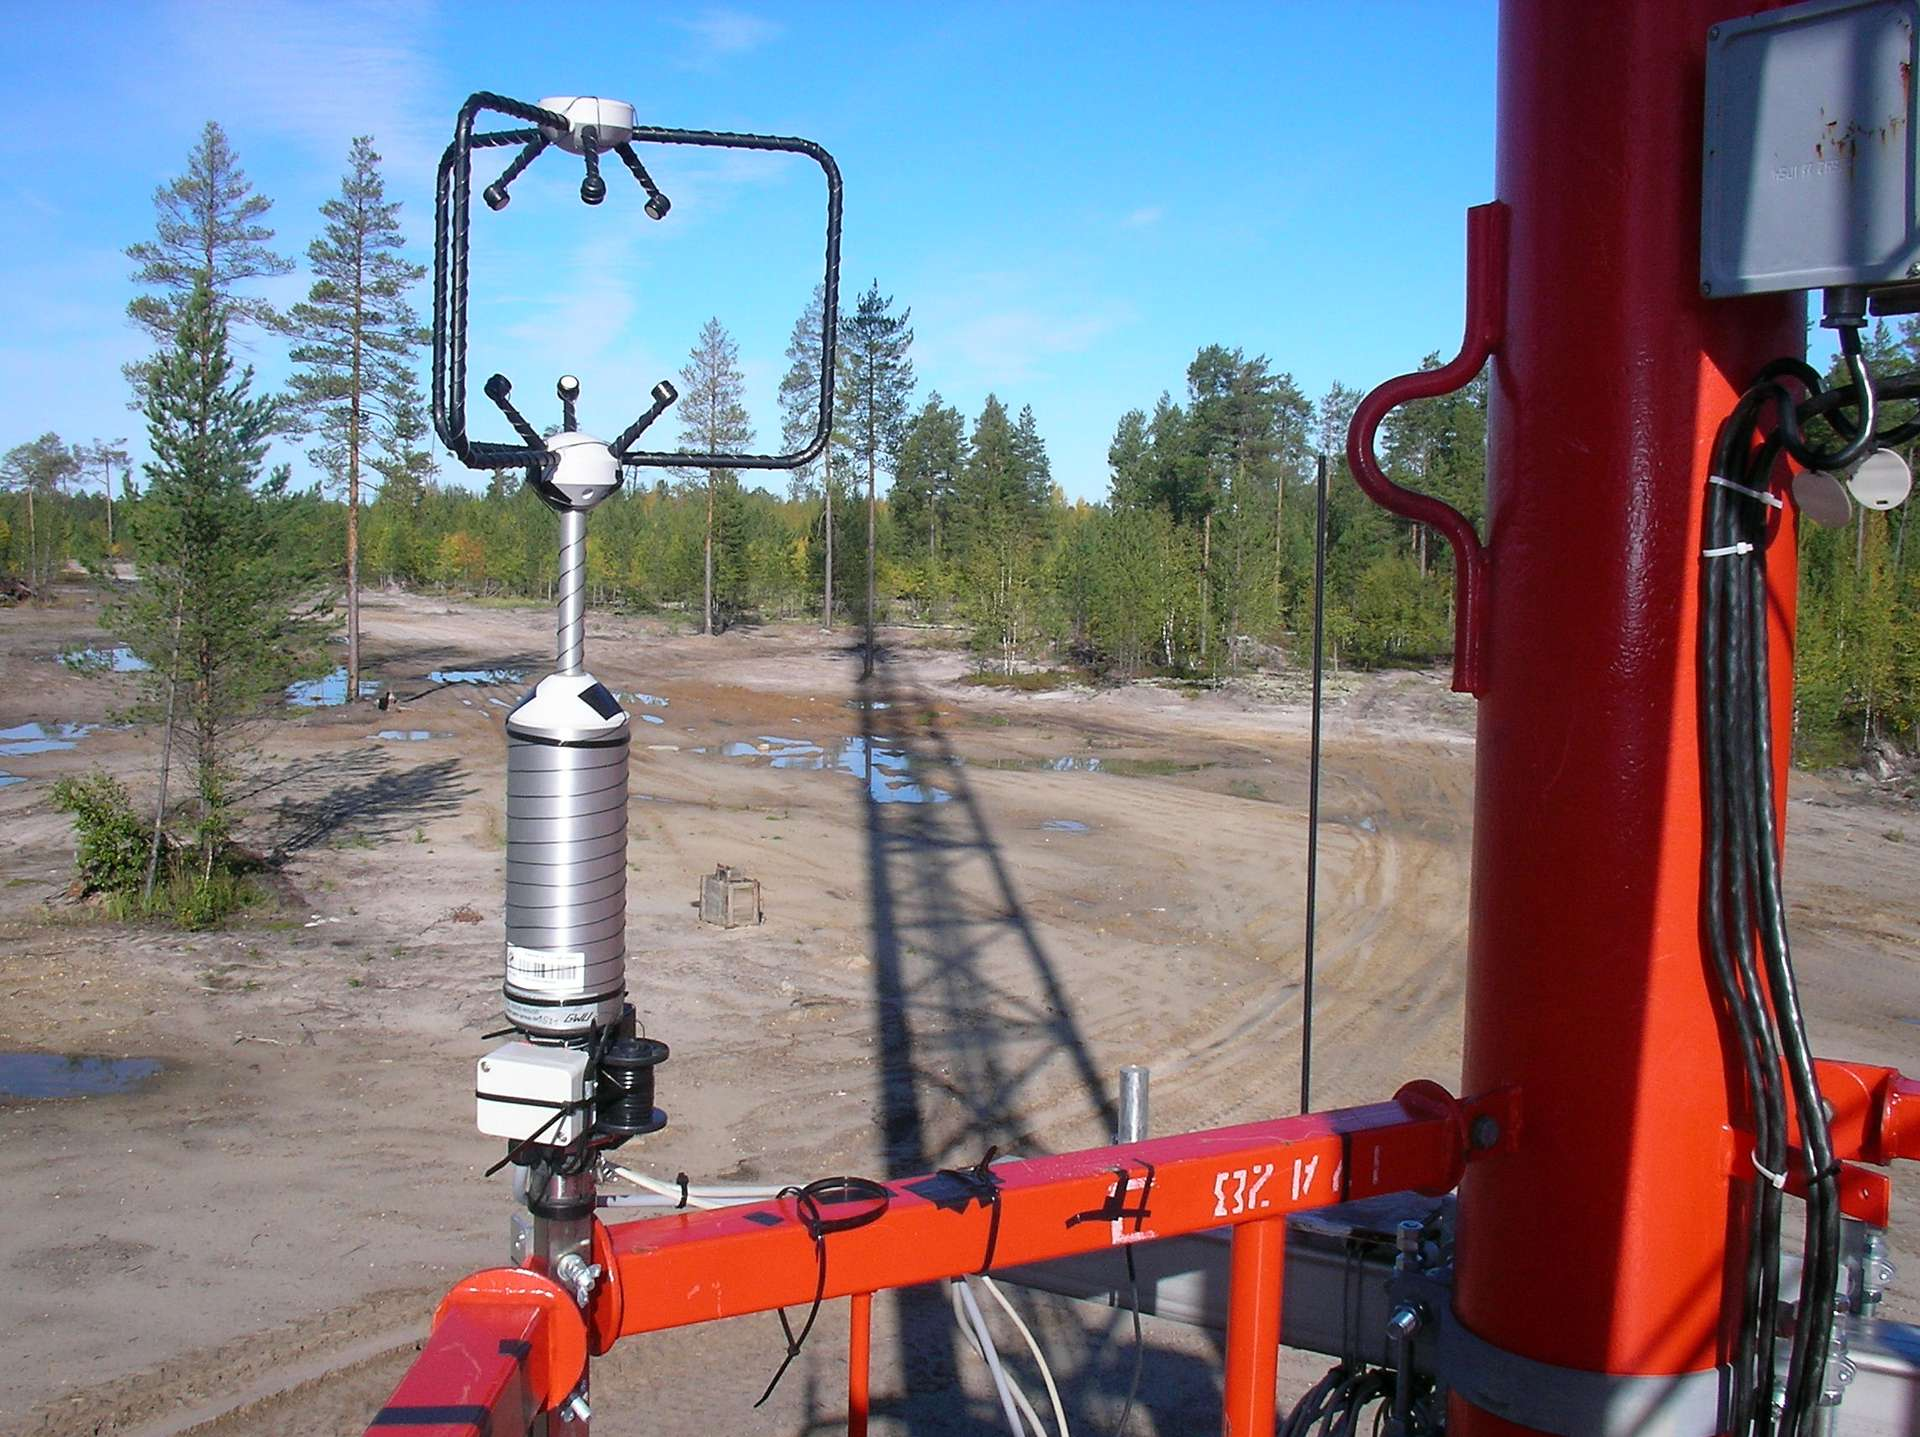 3D anemometer on lowest level of Zotto tall tower